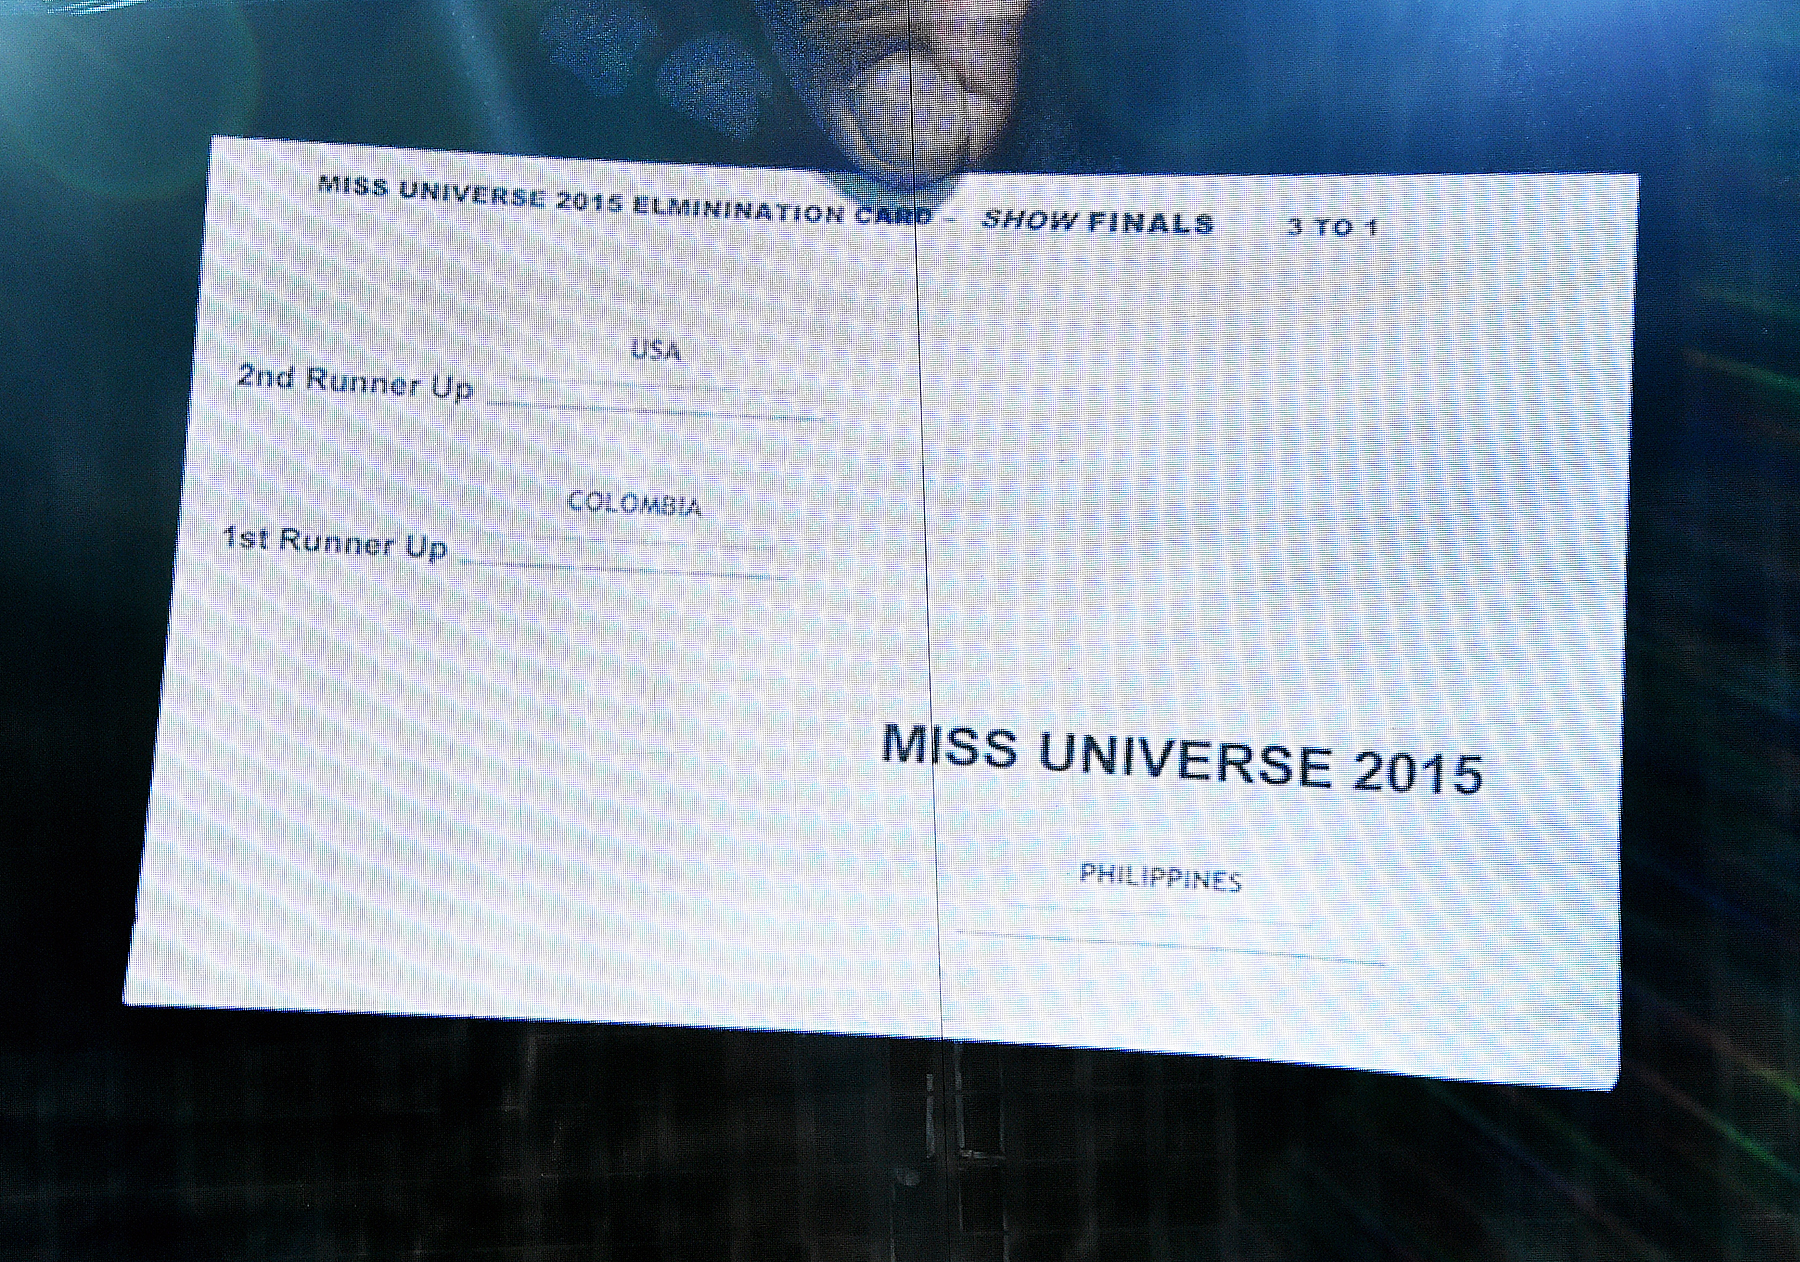 The card showing the order of the top three finalists in the 2015 Miss Universe Pageant